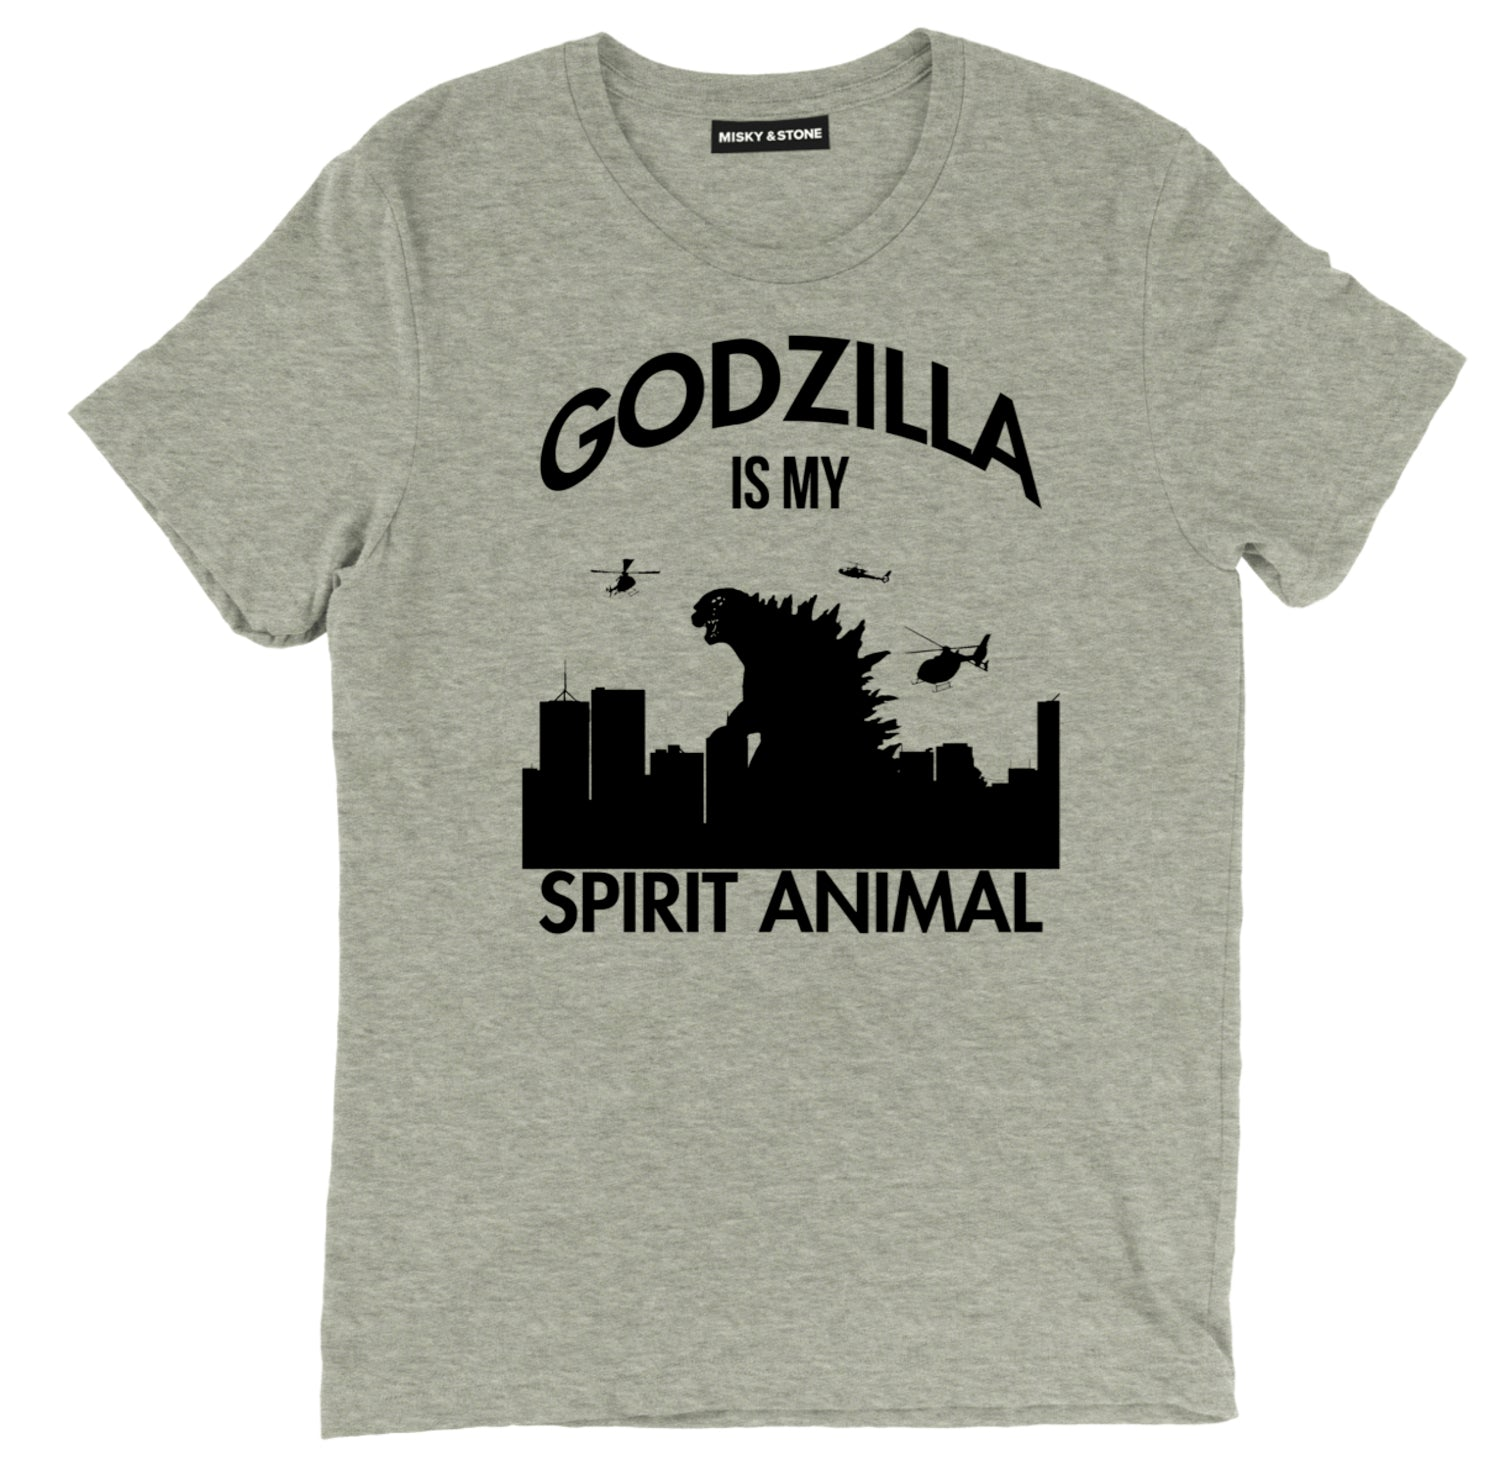 godzilla is my spirit animal tee shirt, godzilla is my spirit animal clothing, godzilla spirit animal apparel, godzilla merch